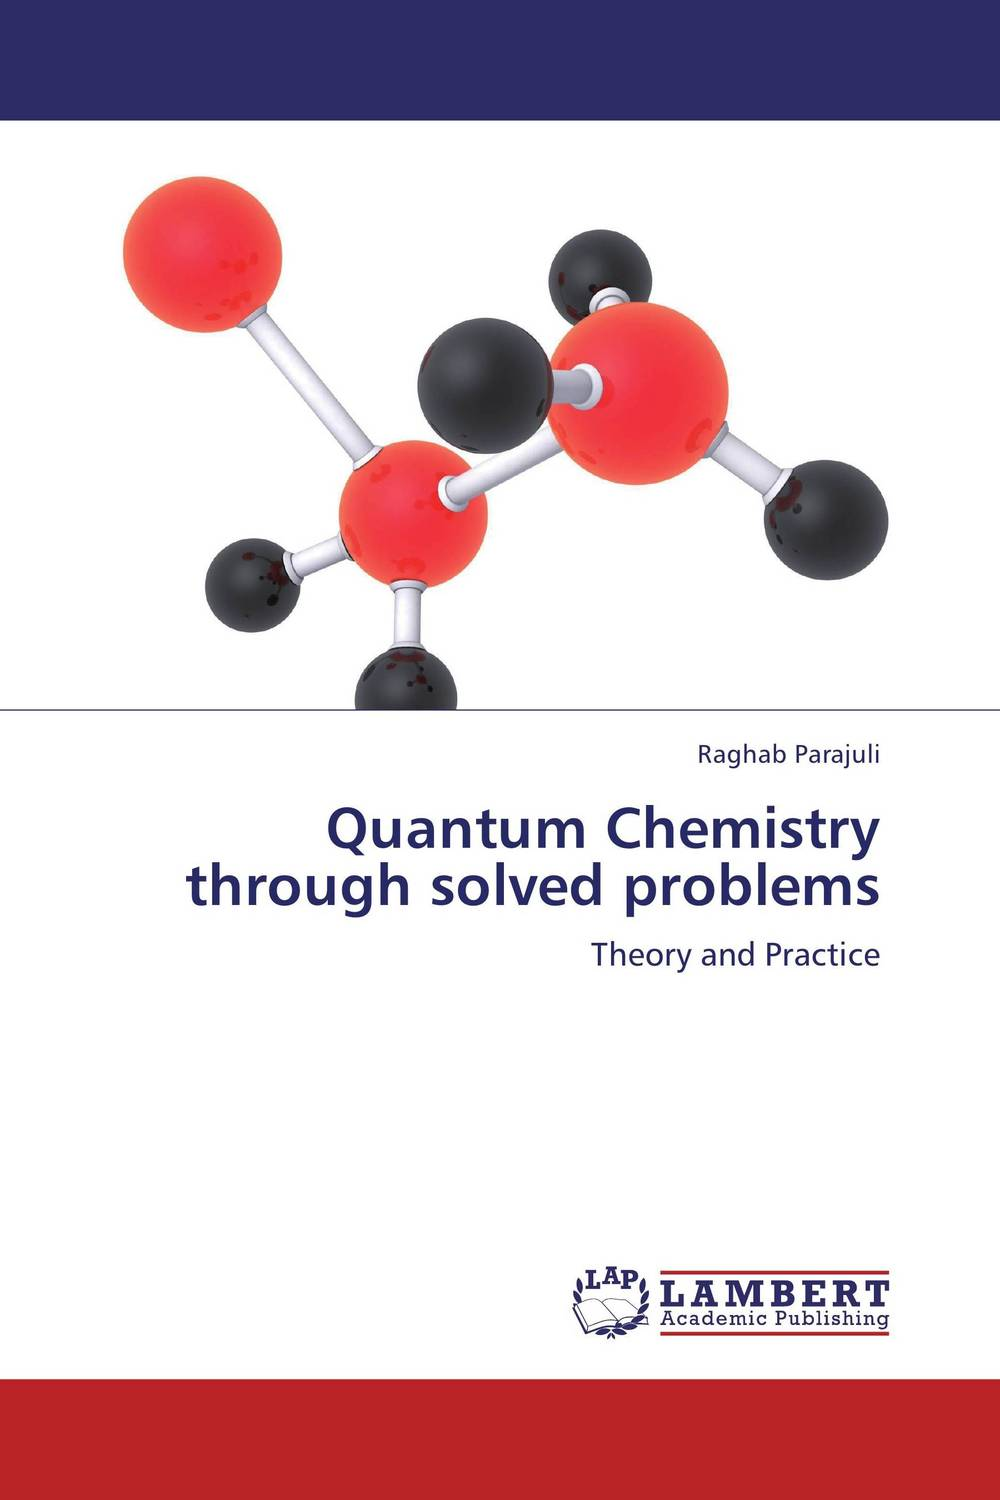 Quantum Chemistry through solved problems solving problems in analytical chemistry